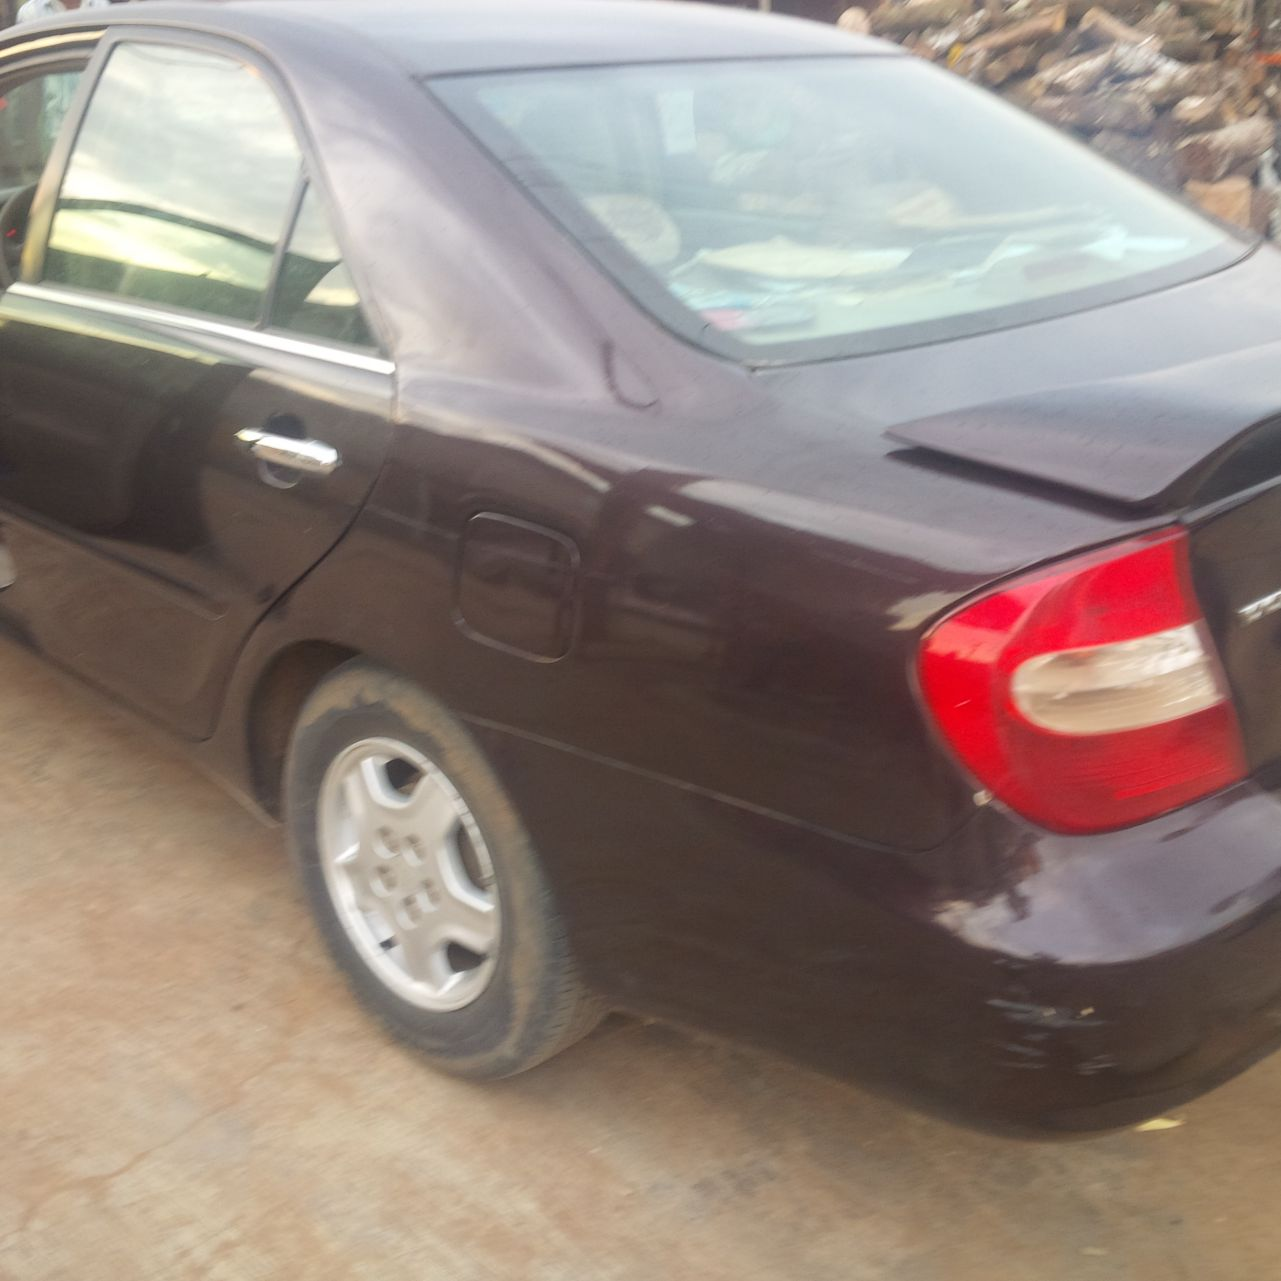 brand new toyota camry price in nigeria grand avanza ngelitik clean registered 2004 le leatherseat bigdaddy